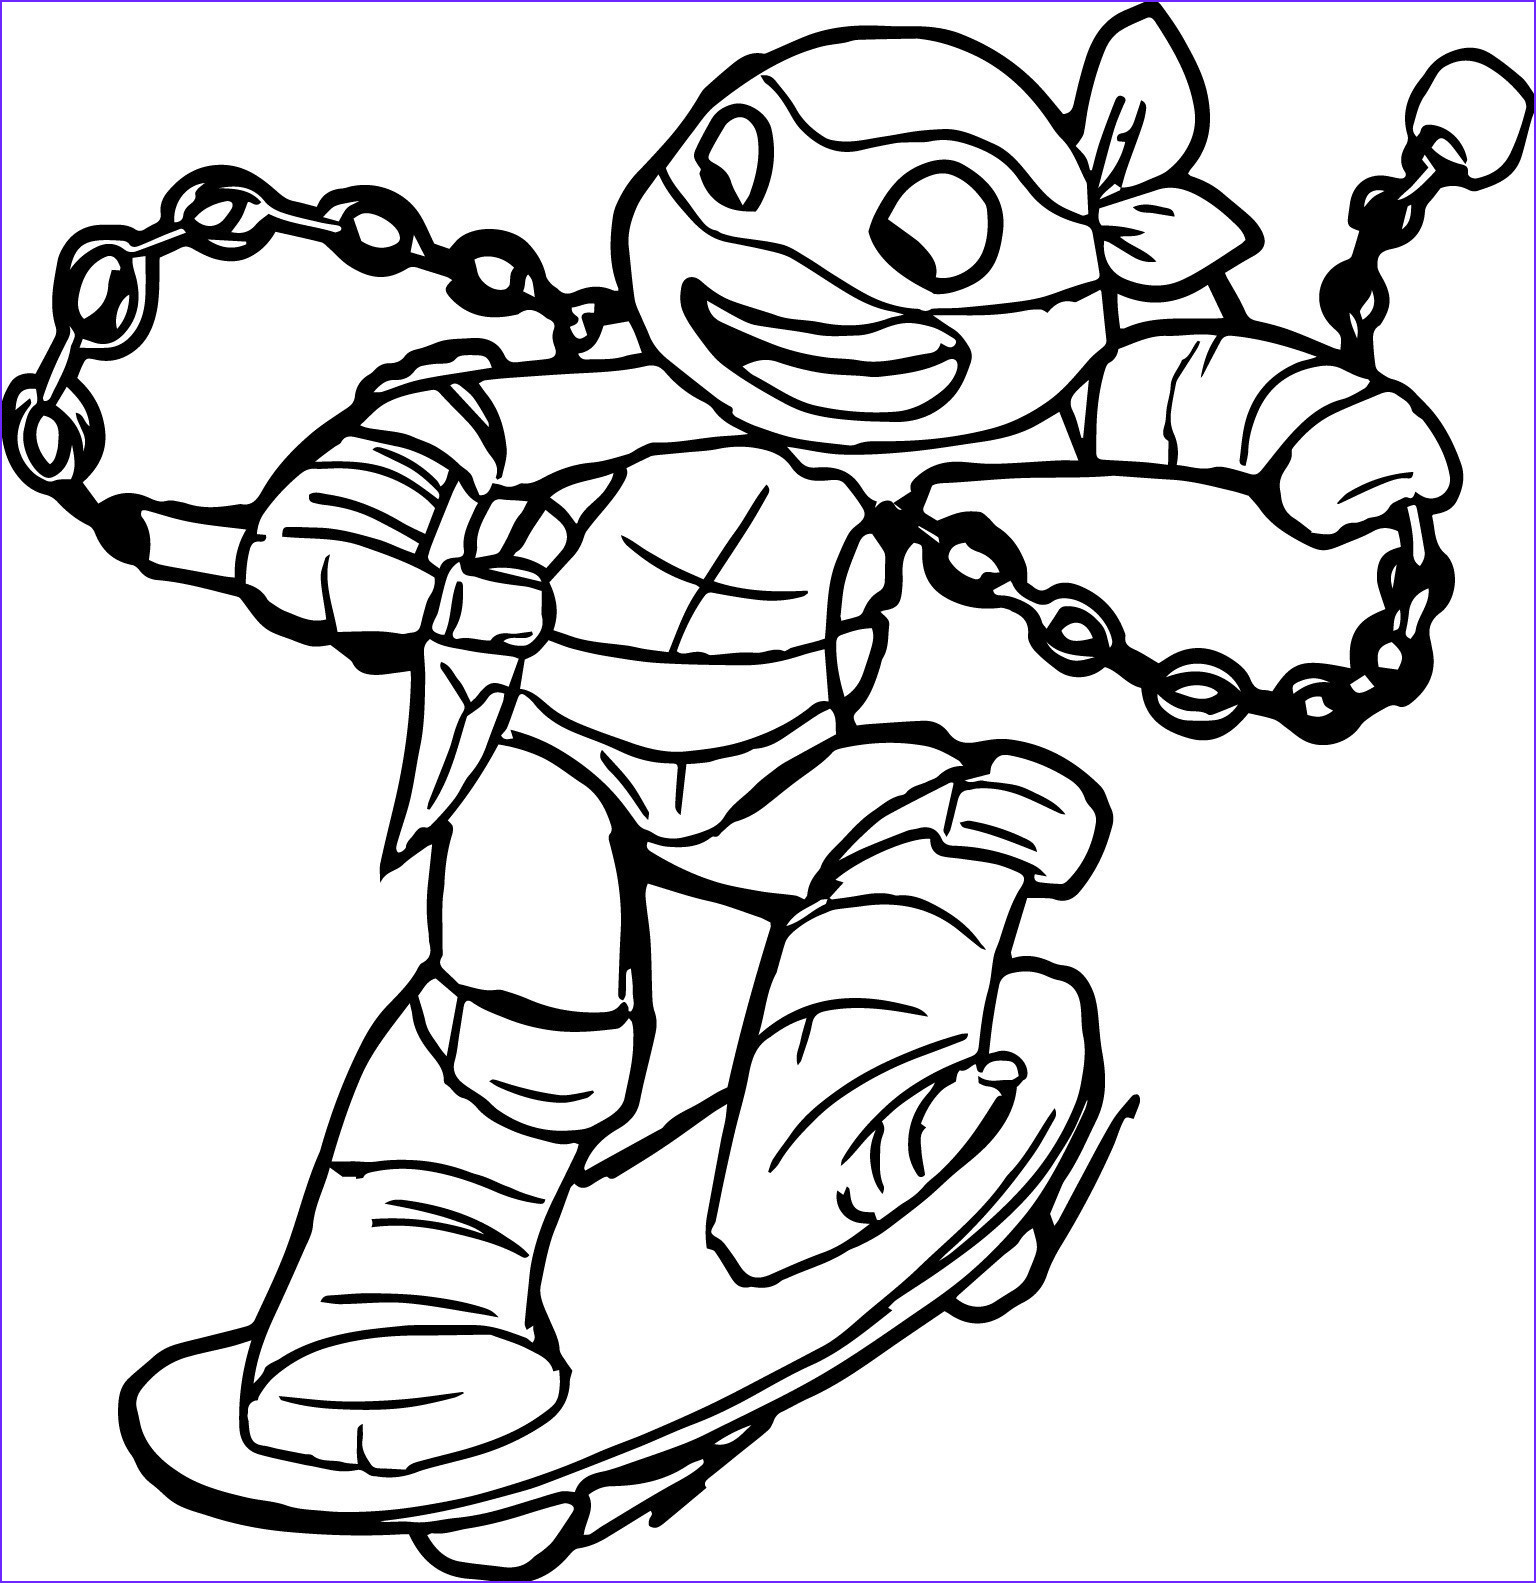 Turtle Coloring Book Unique Photos Teenage Mutant Ninja Turtles Coloring Pages Best